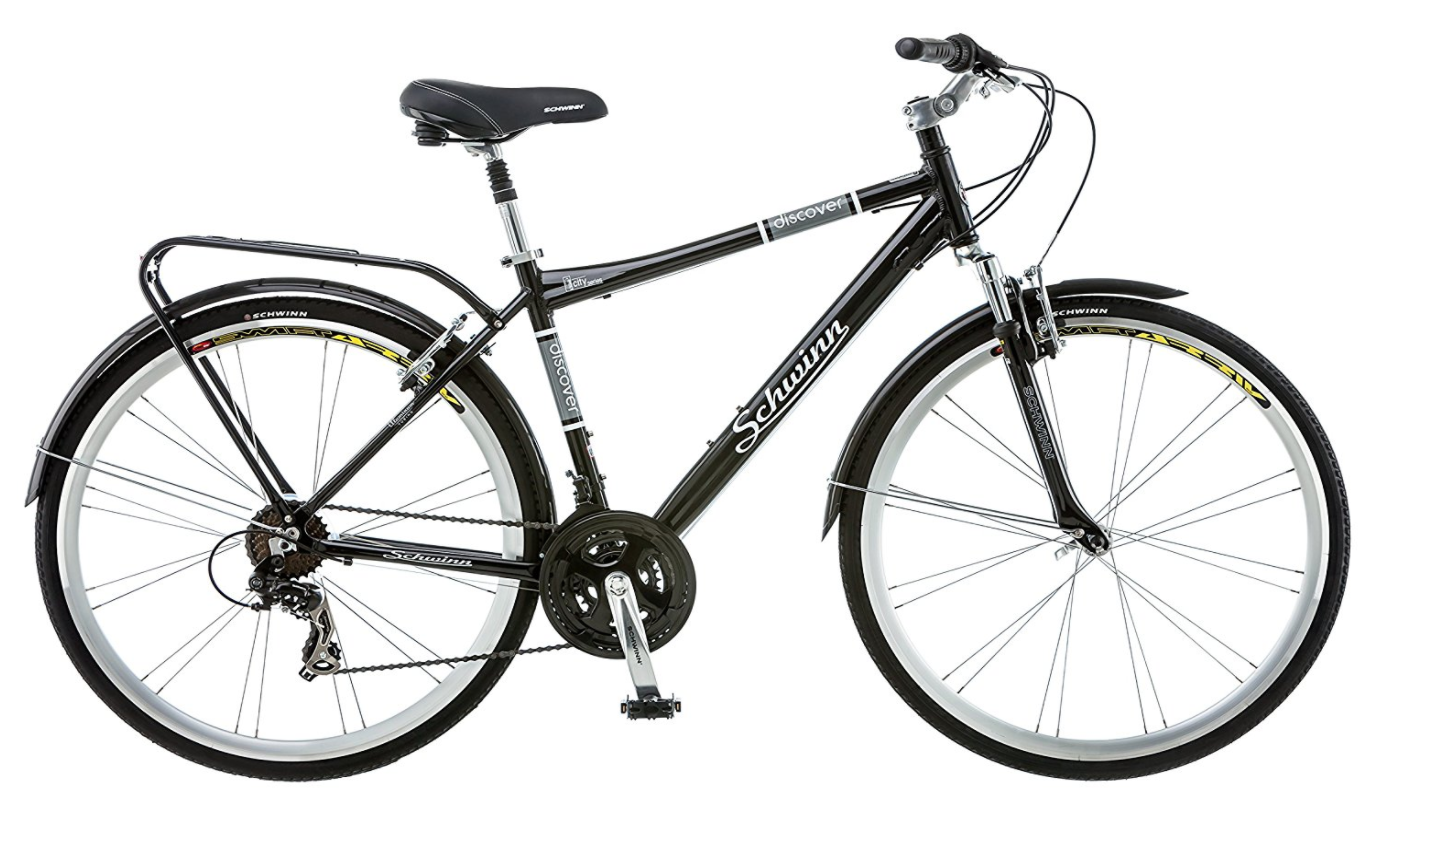 The Best Commuter Bikes For Any Commute Hybrid Bike Commuter